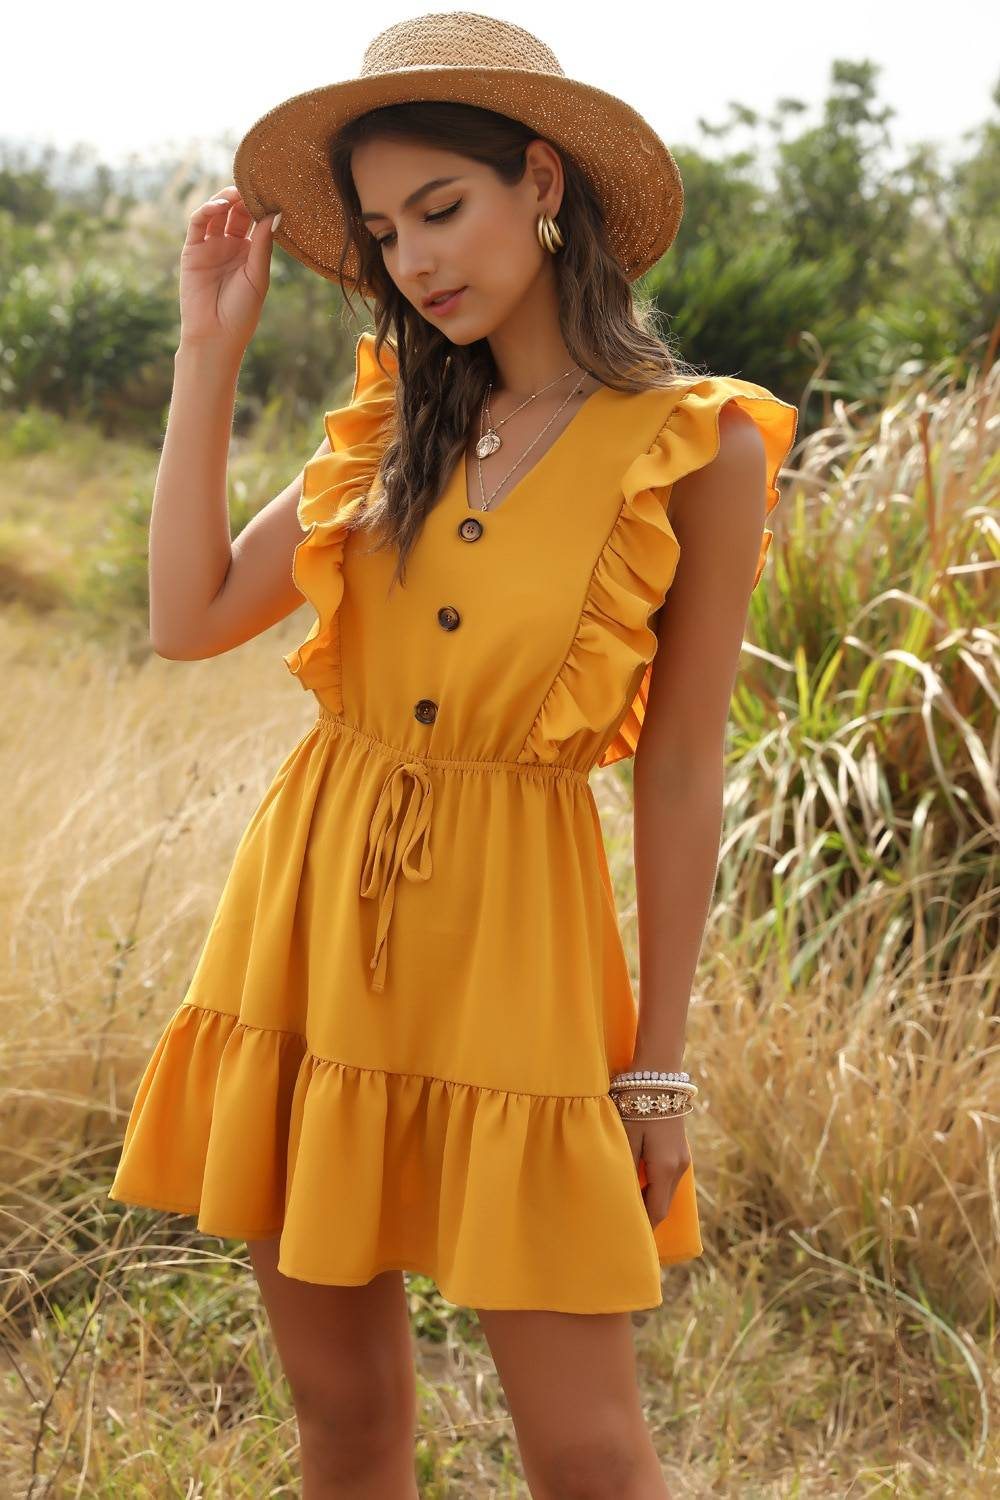 Forefair Sexy Women Dress Ruffle 2020 Off Shoulder Tunic High Waist Party V Neck Casual Boho Beach Yellow Women Summer Dress